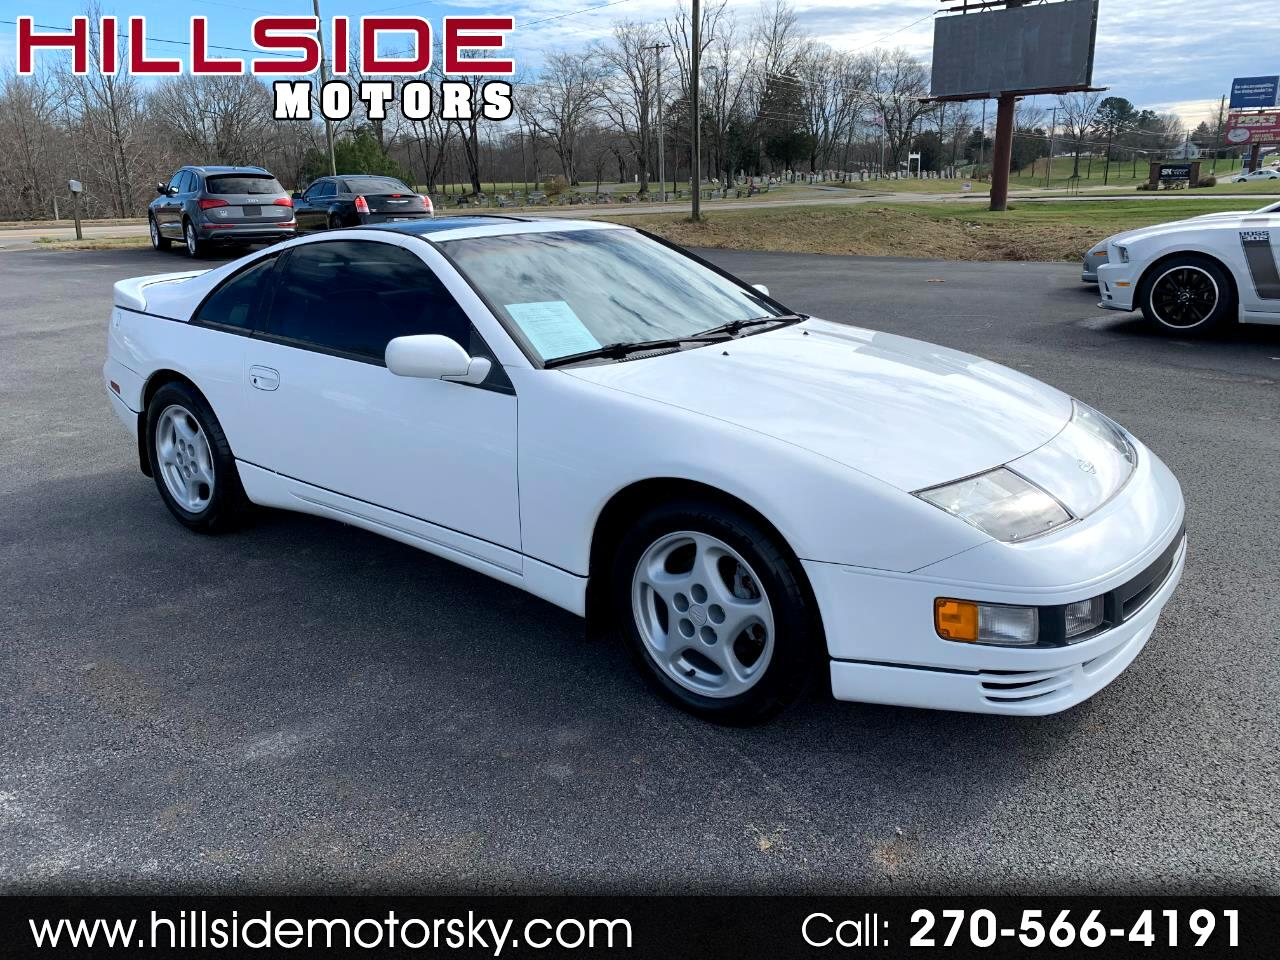 Nissan 300ZX 2dr Hatchback Coupe Turbo 5-Spd w/T-Bar 1993